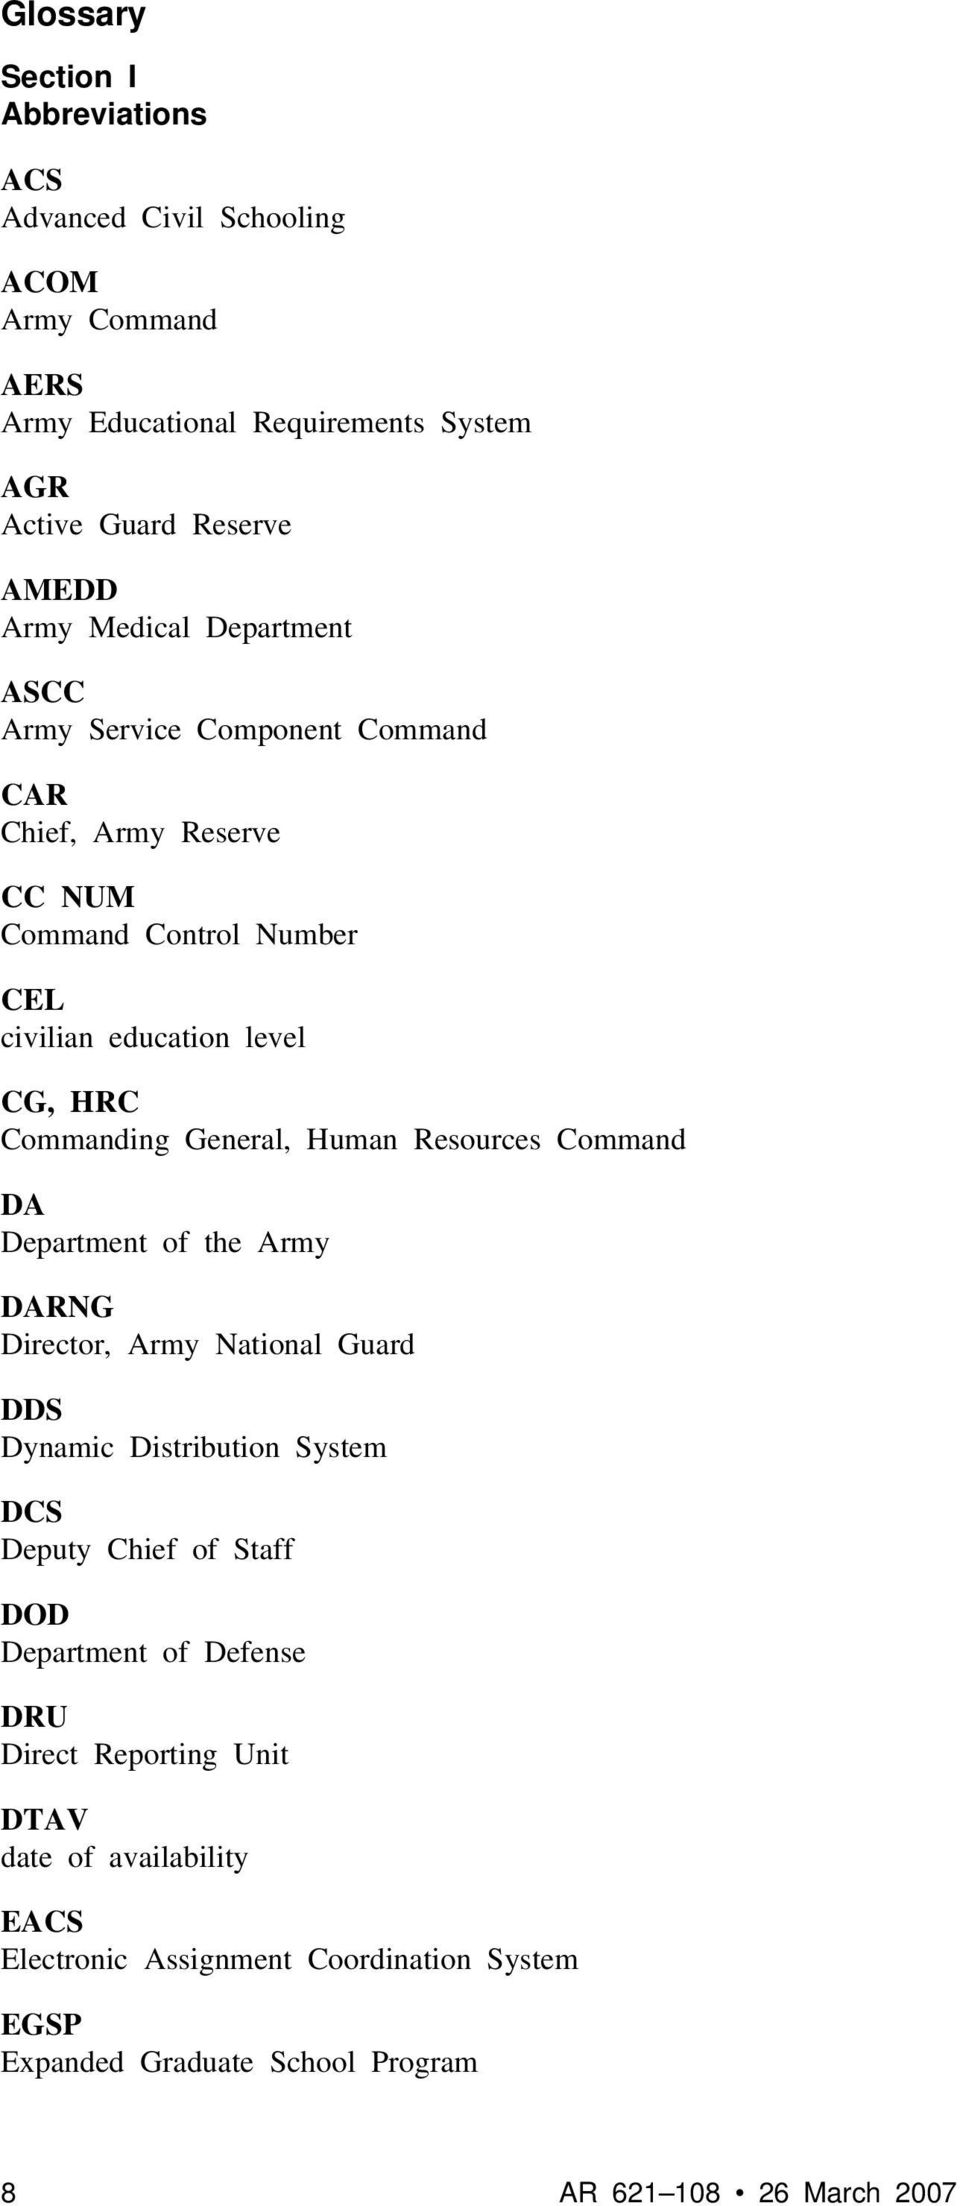 General, Human Resources Command DA Department of the Army DARNG Director, Army National Guard DDS Dynamic Distribution System DCS Deputy Chief of Staff DOD